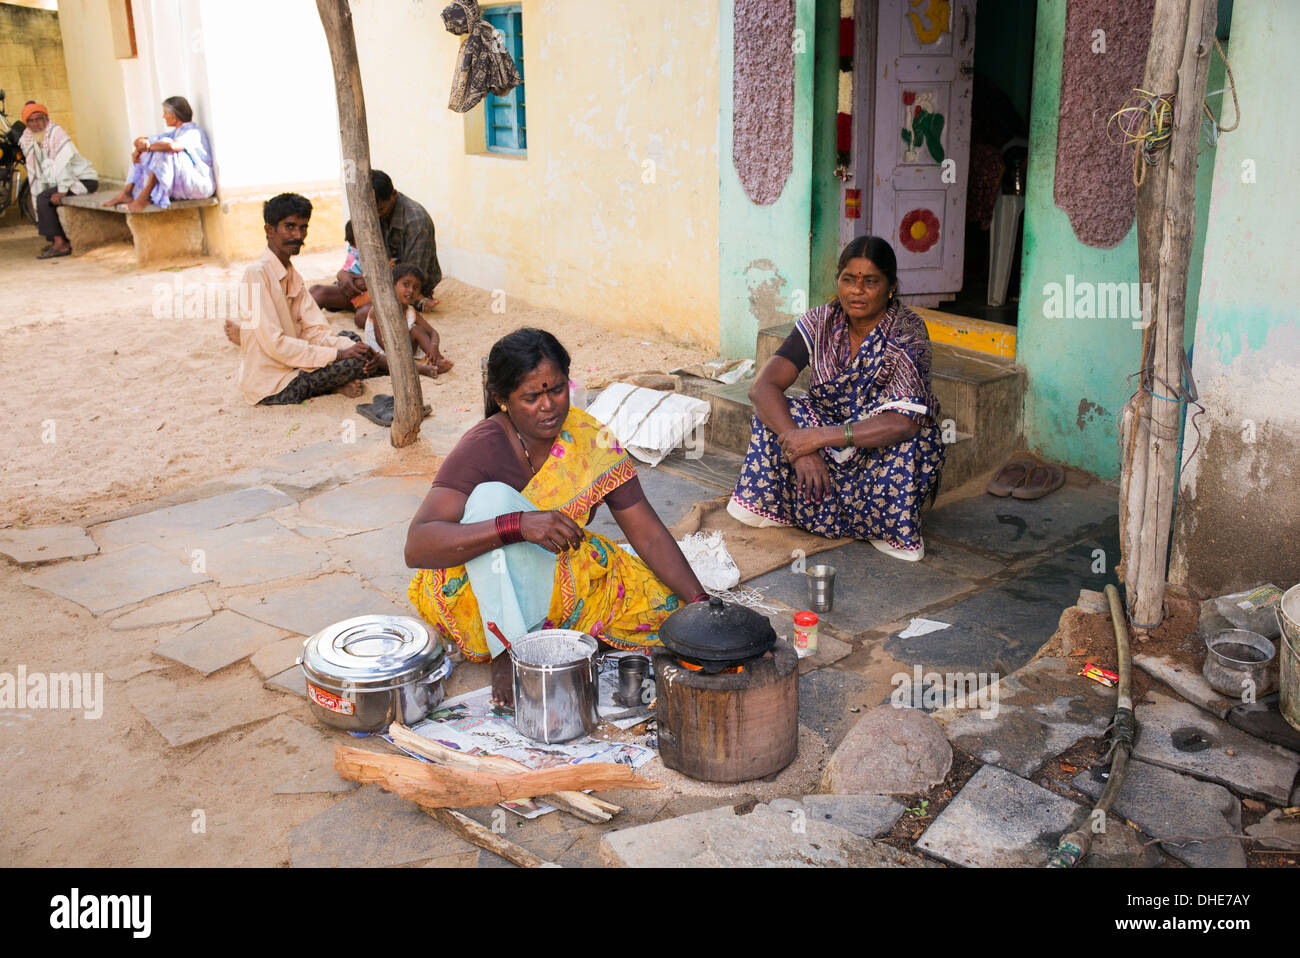 http://c8.alamy.com/comp/DHE7AY/indian-woman-cooking-dosa-for-people-outside-a-rural-village-house-DHE7AY.jpg Indian Woman Cooking